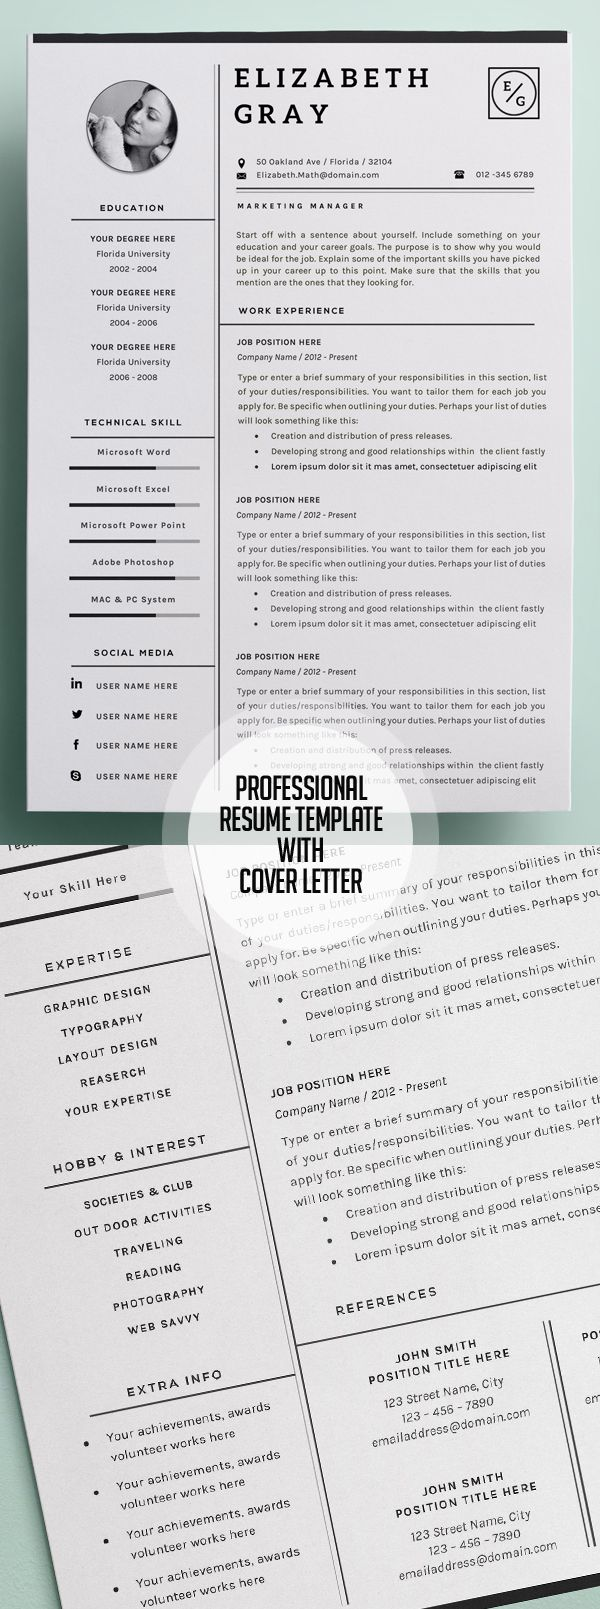 Opposenewapstandardsus  Pleasing  Resume Ideas On Pinterest  Resume Resume Templates And  With Foxy Professional And Modern Resume Template With Page Cover Cvtemplate With Cute Resume Expamples Also Day Care Teacher Resume In Addition Free Resume Builer And Free Cover Letter For Resume As Well As Microsoft Word Resume Builder Additionally Secretary Skills Resume From Pinterestcom With Opposenewapstandardsus  Foxy  Resume Ideas On Pinterest  Resume Resume Templates And  With Cute Professional And Modern Resume Template With Page Cover Cvtemplate And Pleasing Resume Expamples Also Day Care Teacher Resume In Addition Free Resume Builer From Pinterestcom